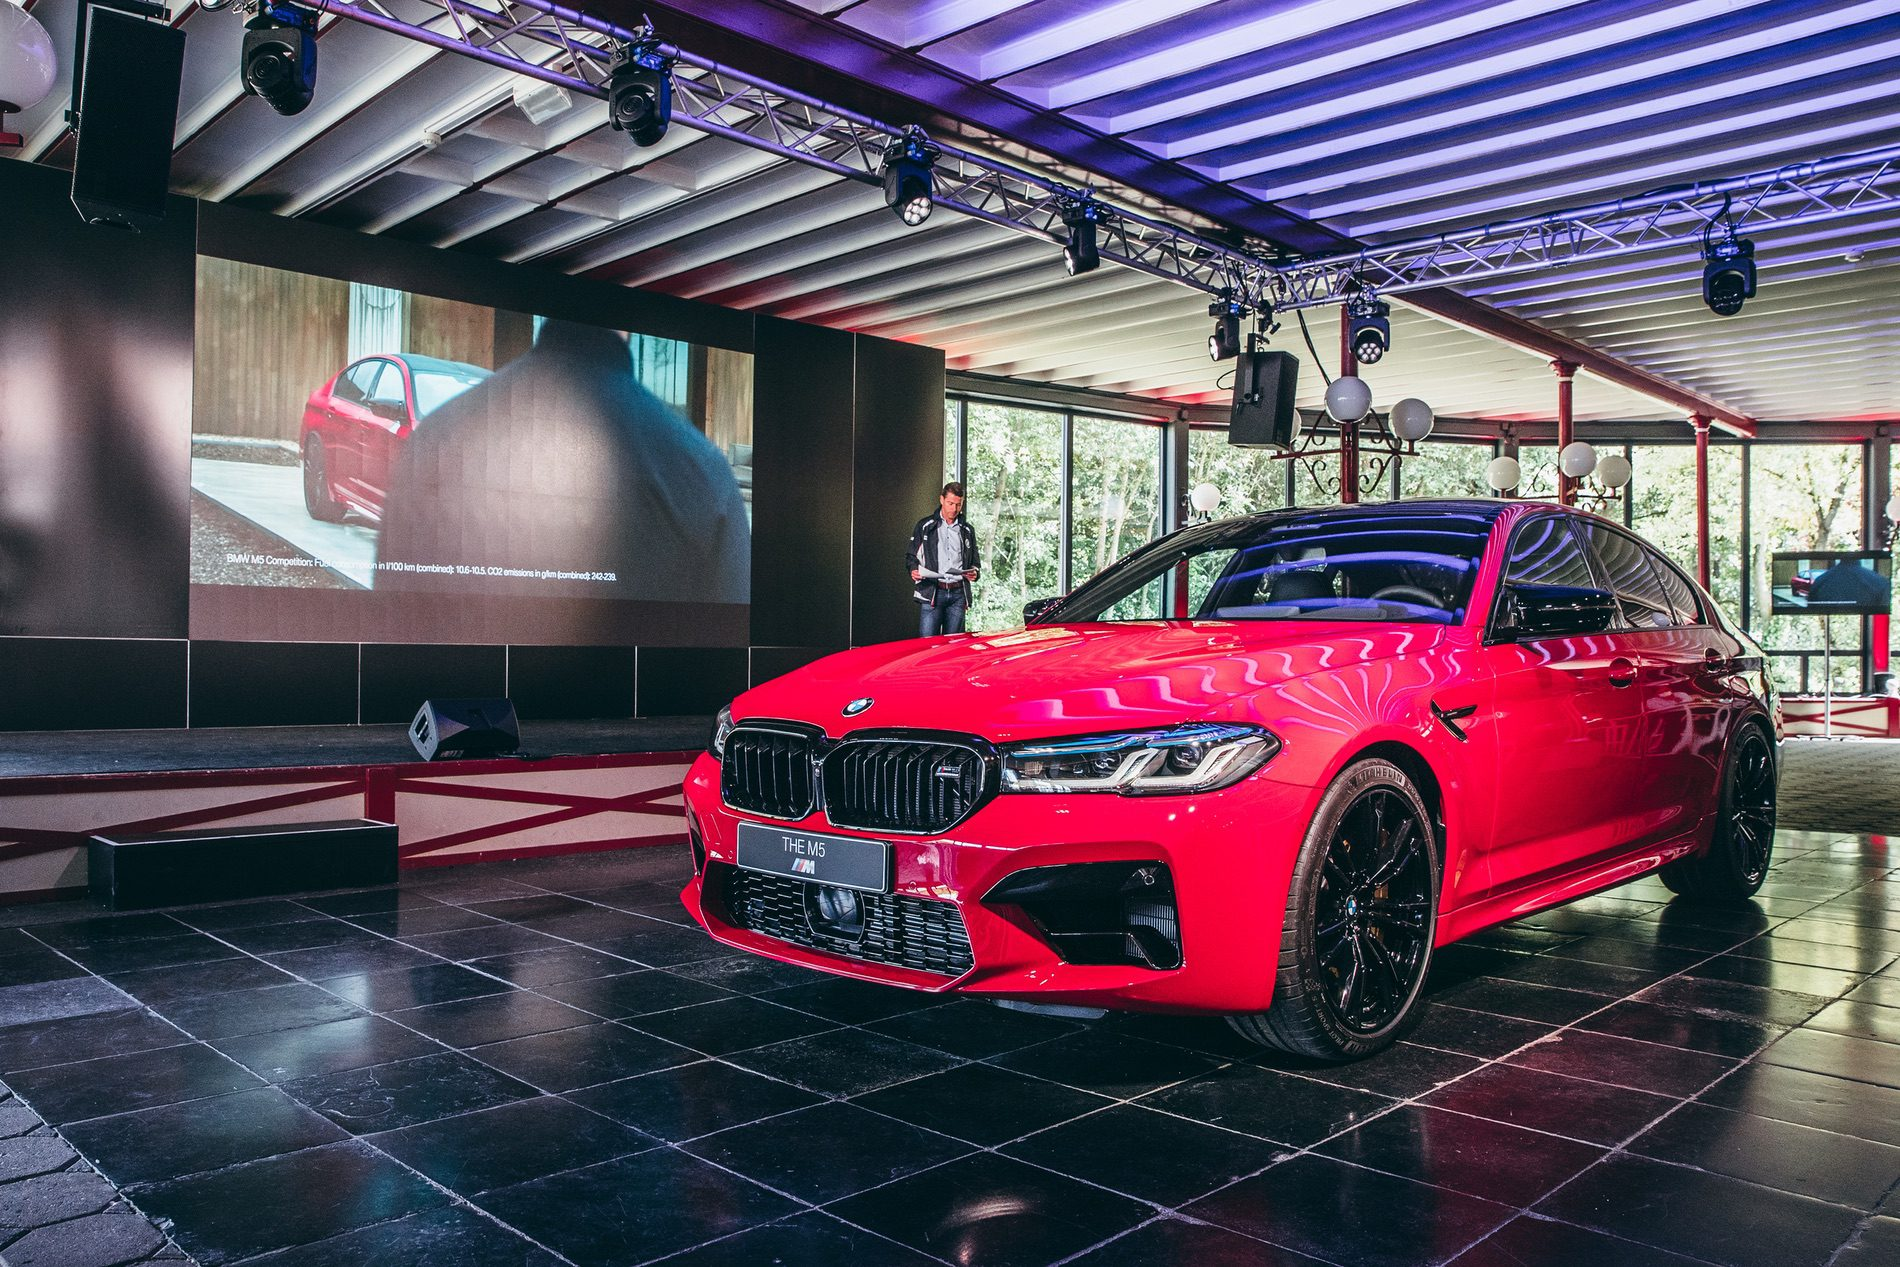 2021 Bmw M5 Rcrmotoryachts Com Handy Tips About Auto Repair And More